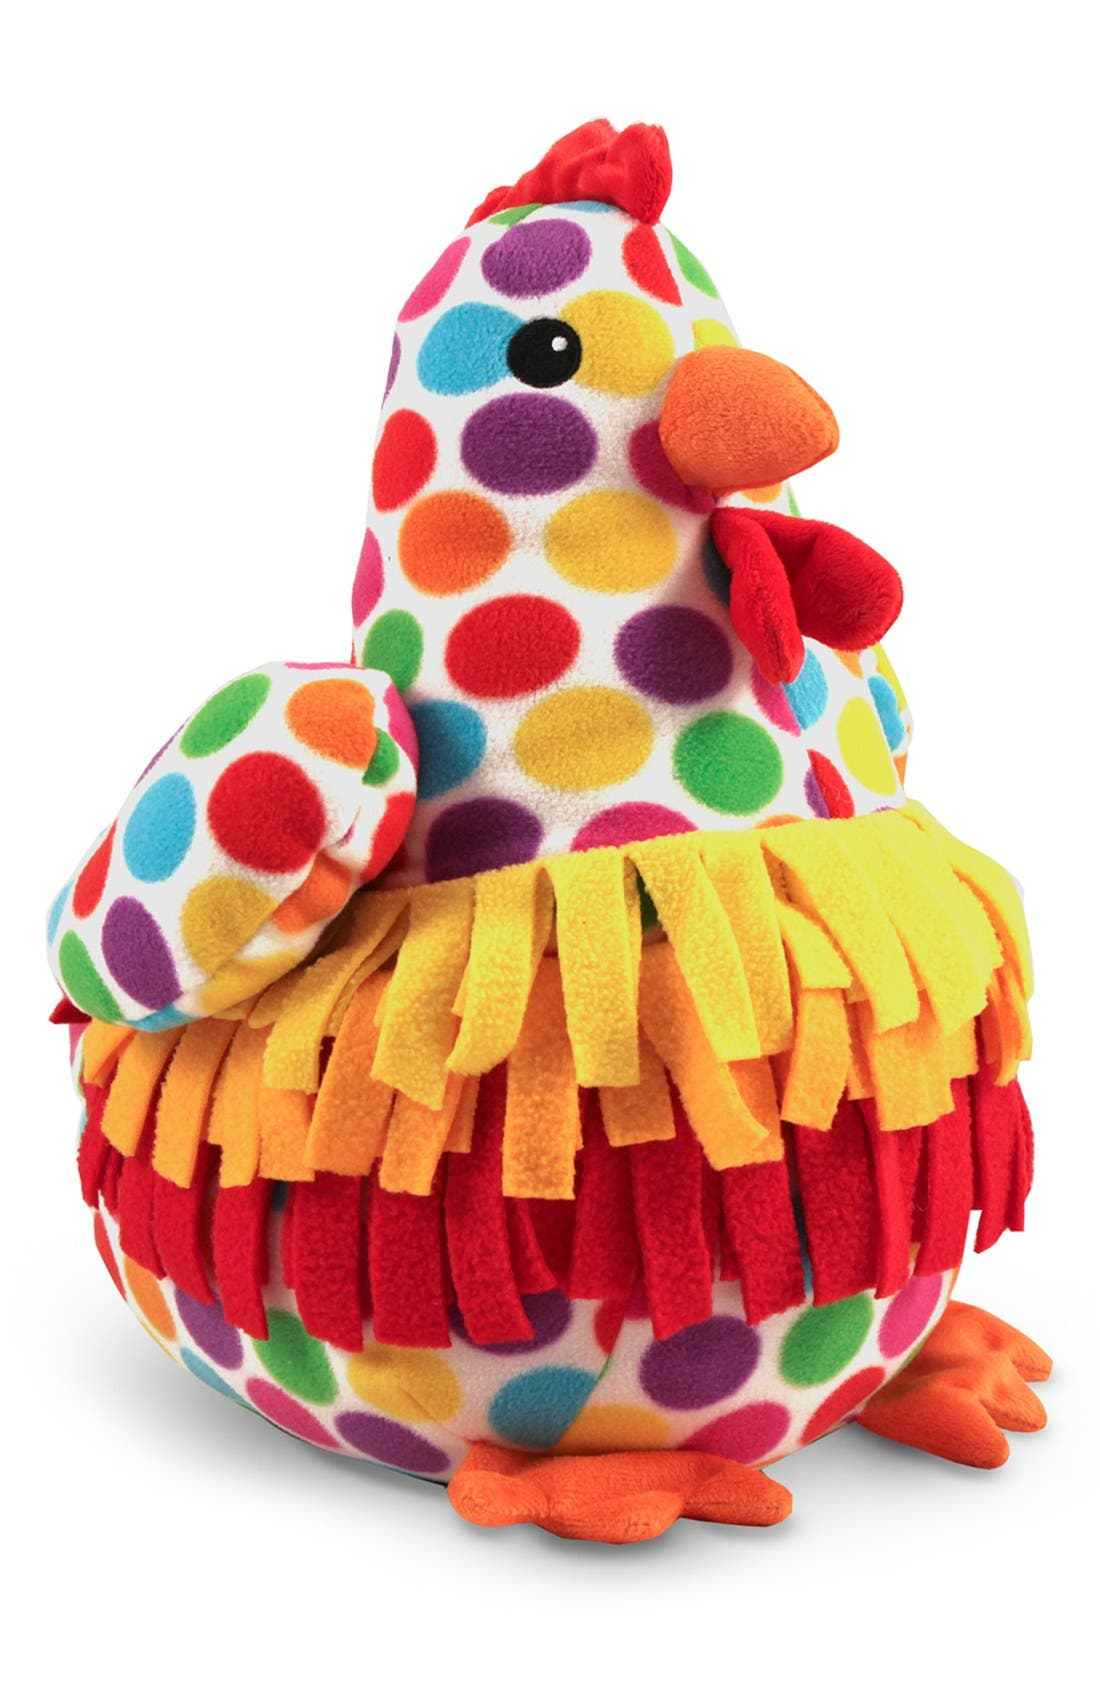 'Beeposh -Dotty Chicken' Plush Toy,                             Main thumbnail 1, color,                             Red